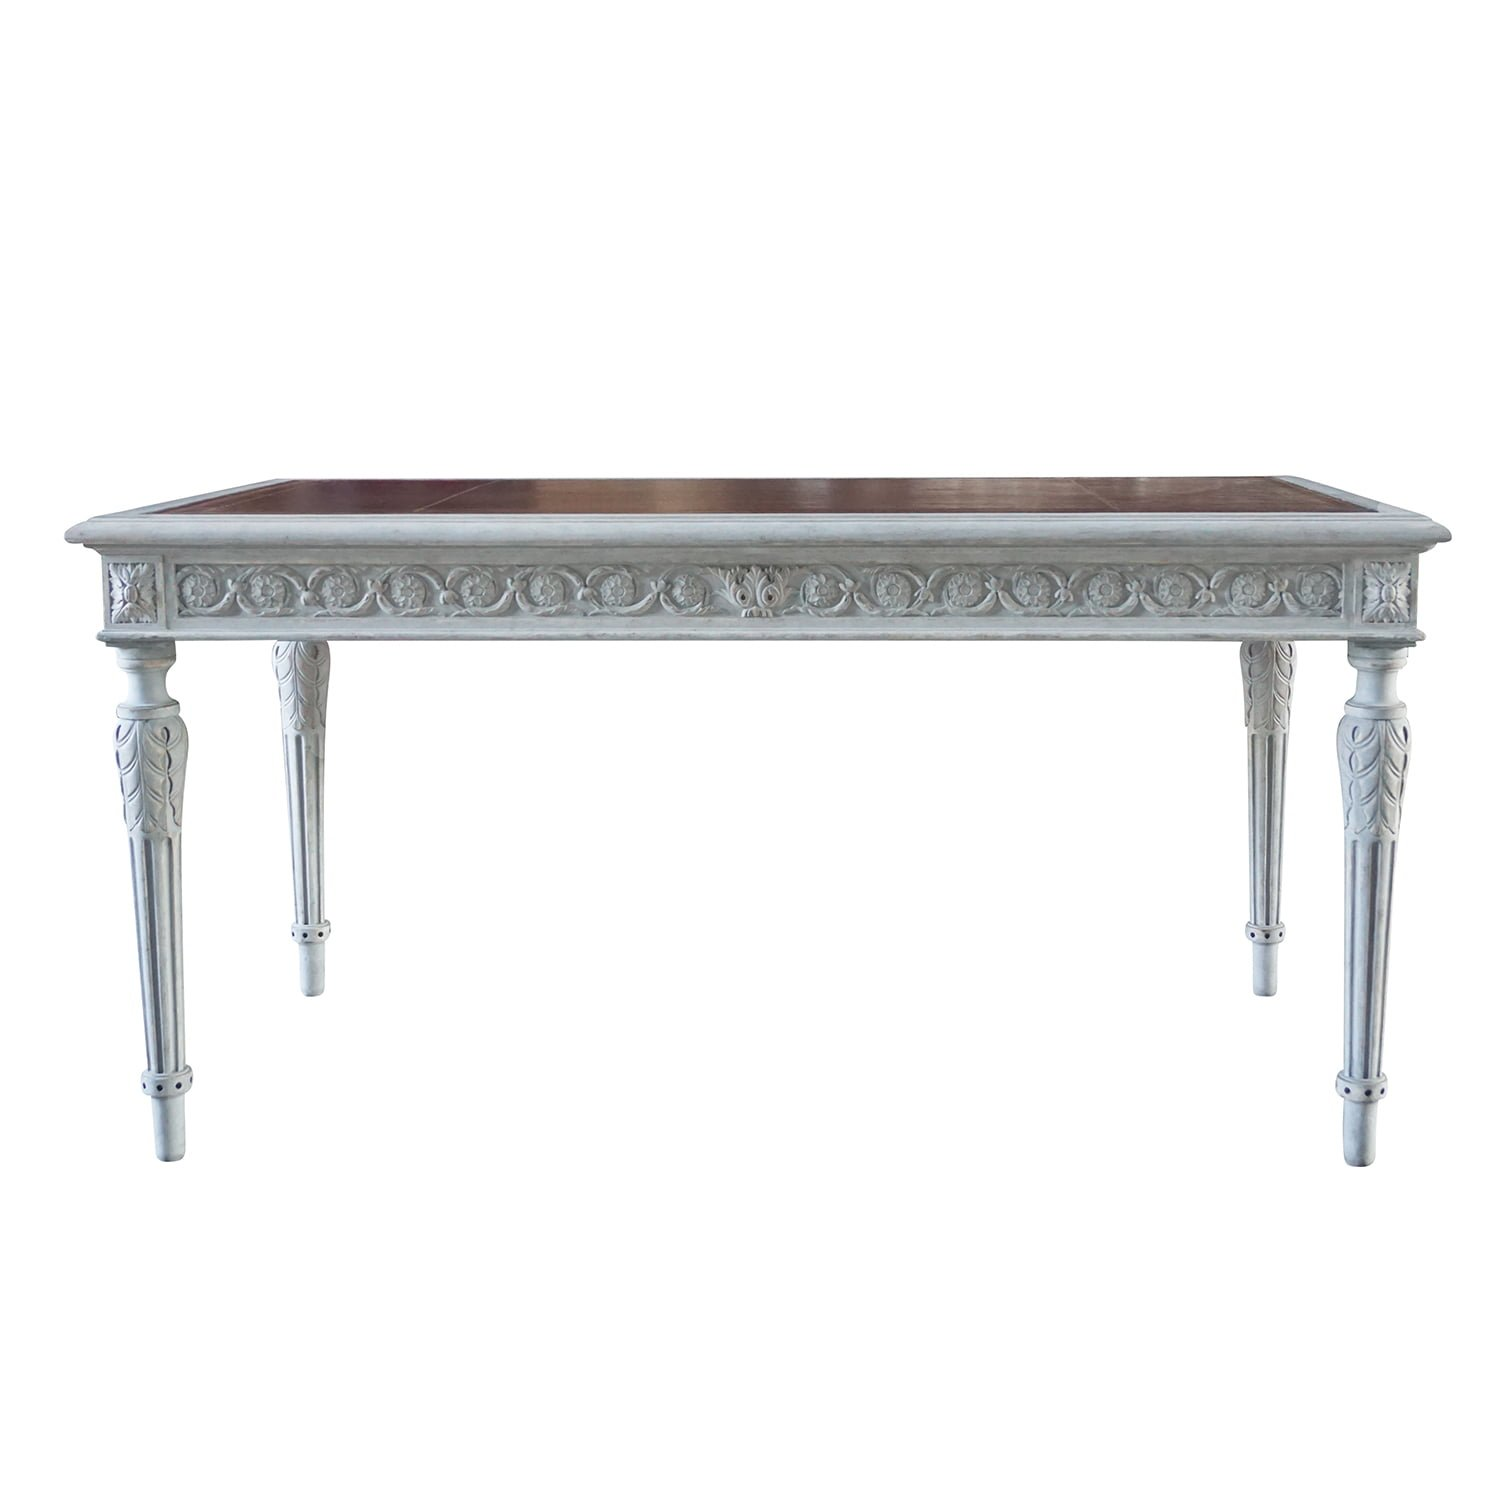 19th Century Swedish Gustavian Writing Desk